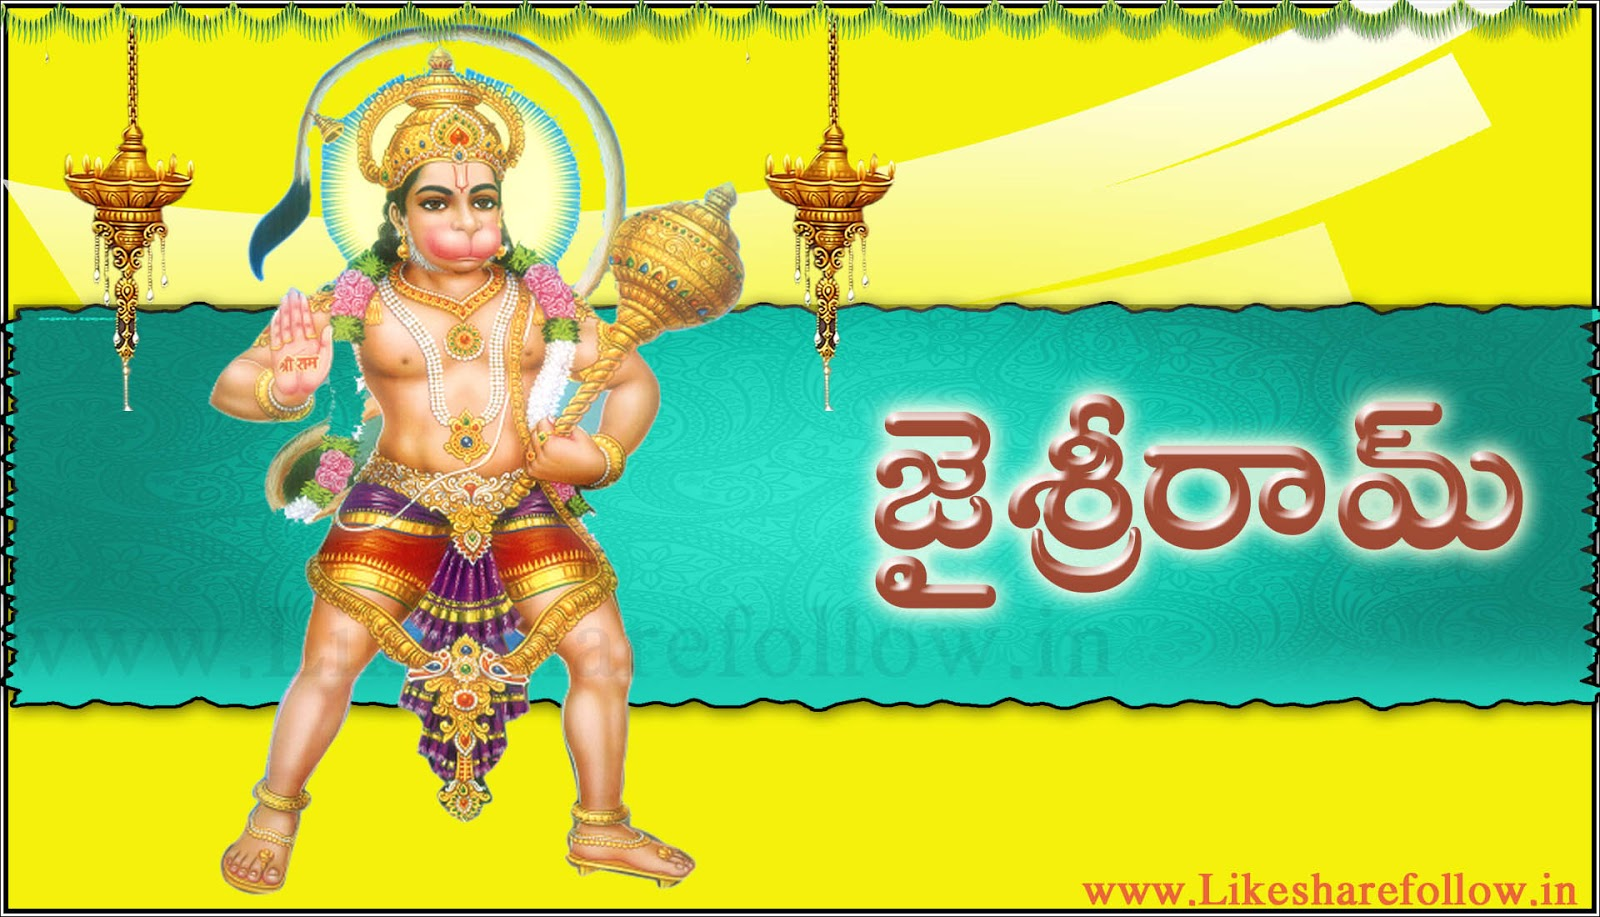 Lord Hanuman Hd Wallpapers Hindu God Wallpapers Like Share Follow